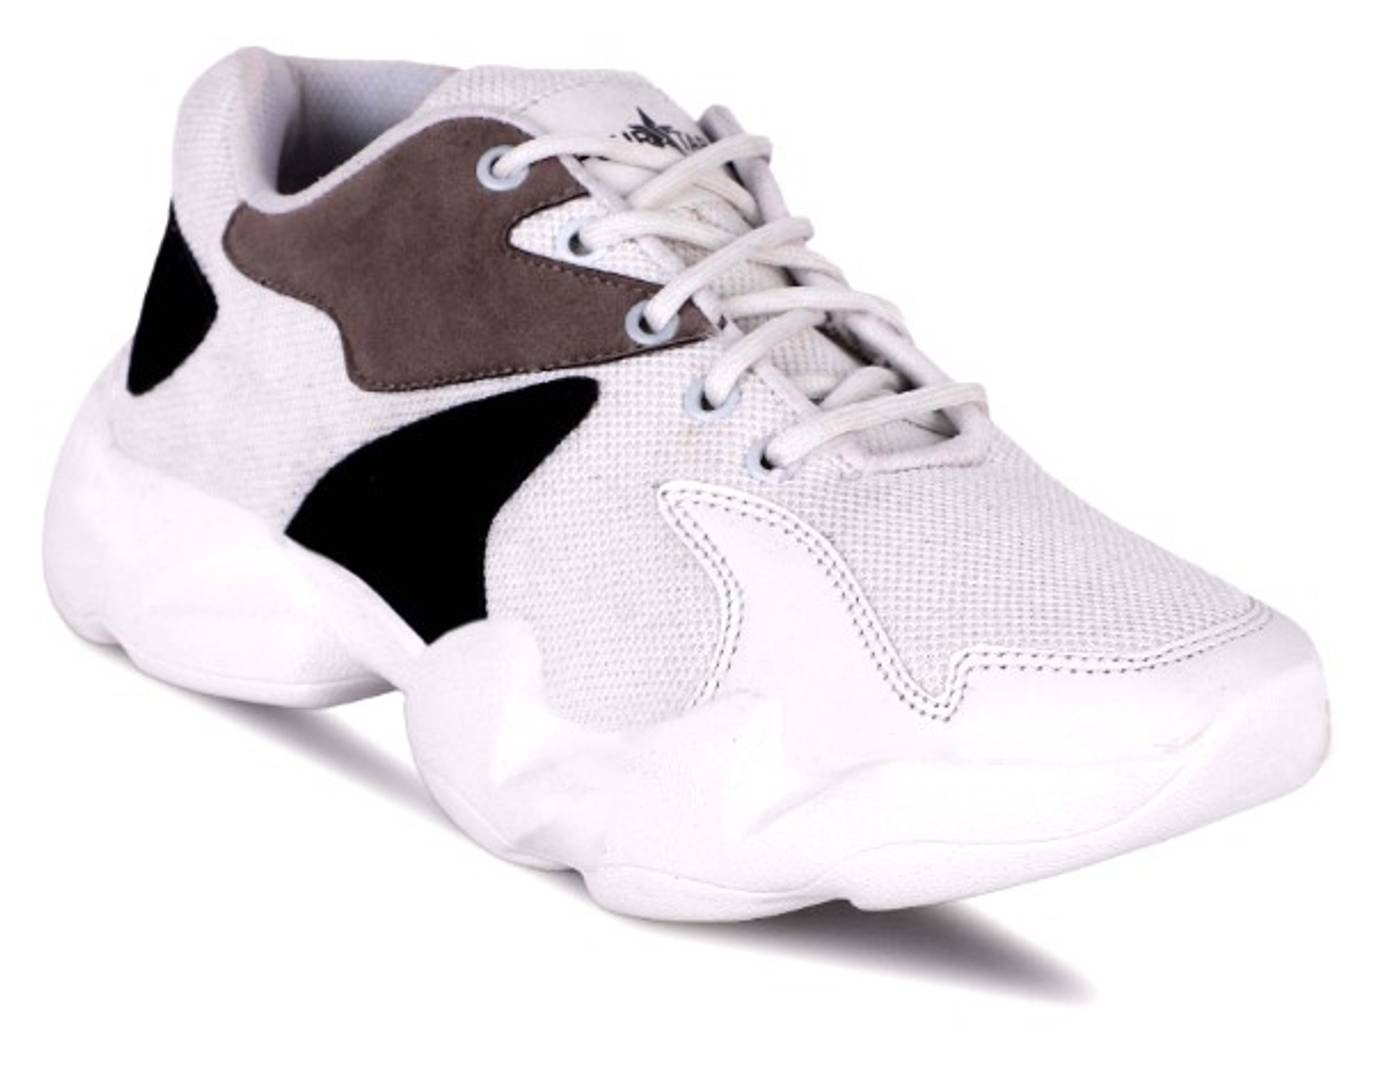 Comfy Mesh Solid Sports Shoe For Men